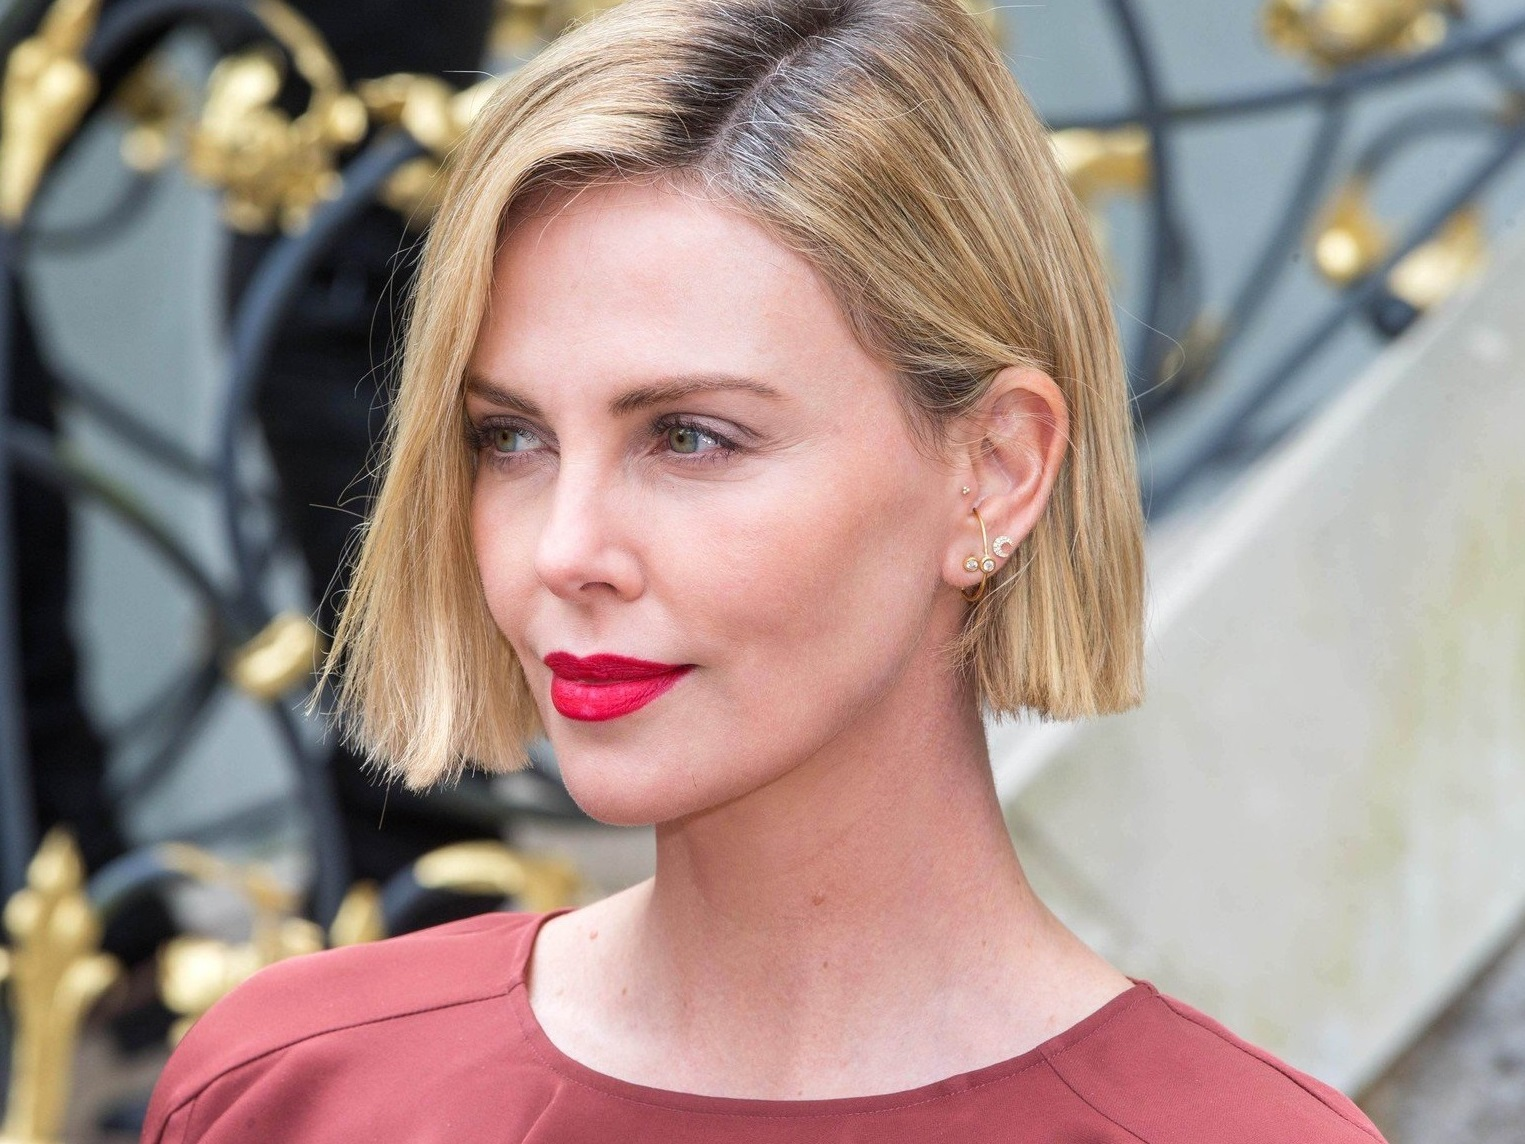 Charlize Theron / Lifeball 2018 - AMFAR EPIC RIDE stops at Villa Emslieb in Salzburg (Austria) on June 01, 2018/ Portrait / Bitte Fotovermerk: Agentur Schneider-Press/Bird//SCHNEIDERPRESS_life011171/Credit:Schneider-Press/Bird/SIPA/1806011432, Image: 373545348, License: Rights-managed, Restrictions: , Model Release: no, Credit line: Profimedia, TEMP Sipa Press